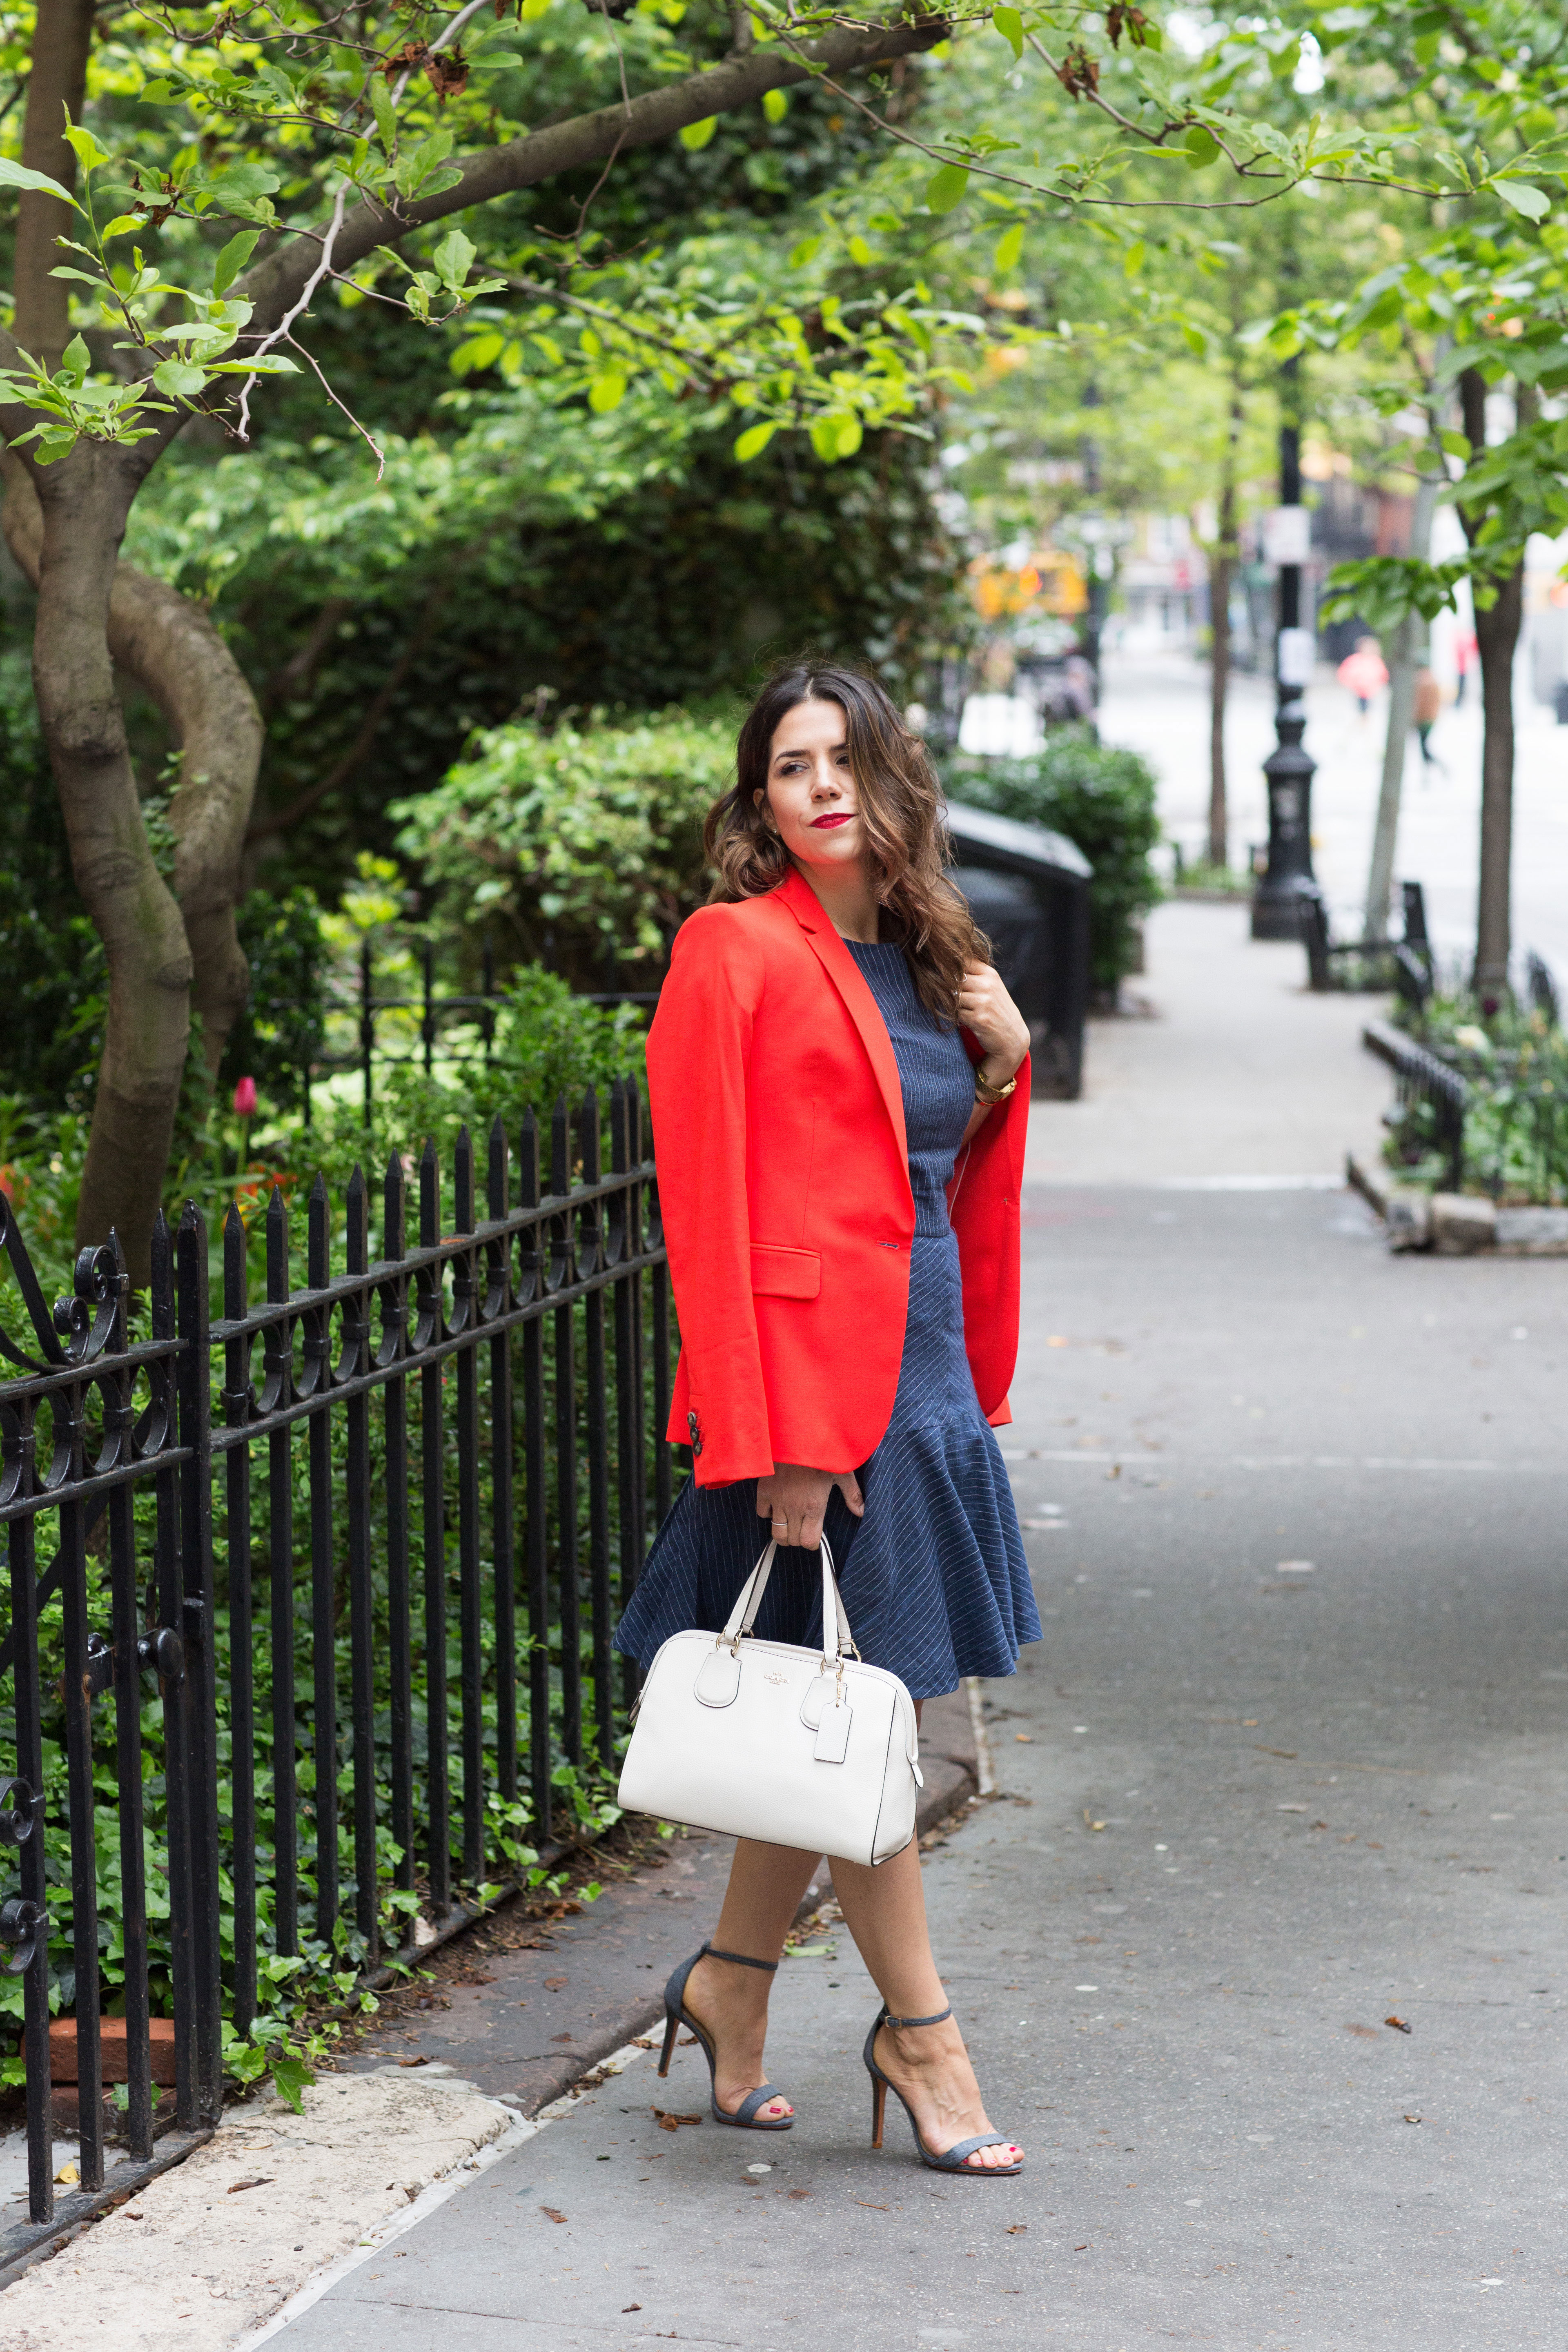 workwear-outfit-for-spring-wearing-Banana-Republic-Red-Blazer-with-denim-dress-and-white-coach-purse3